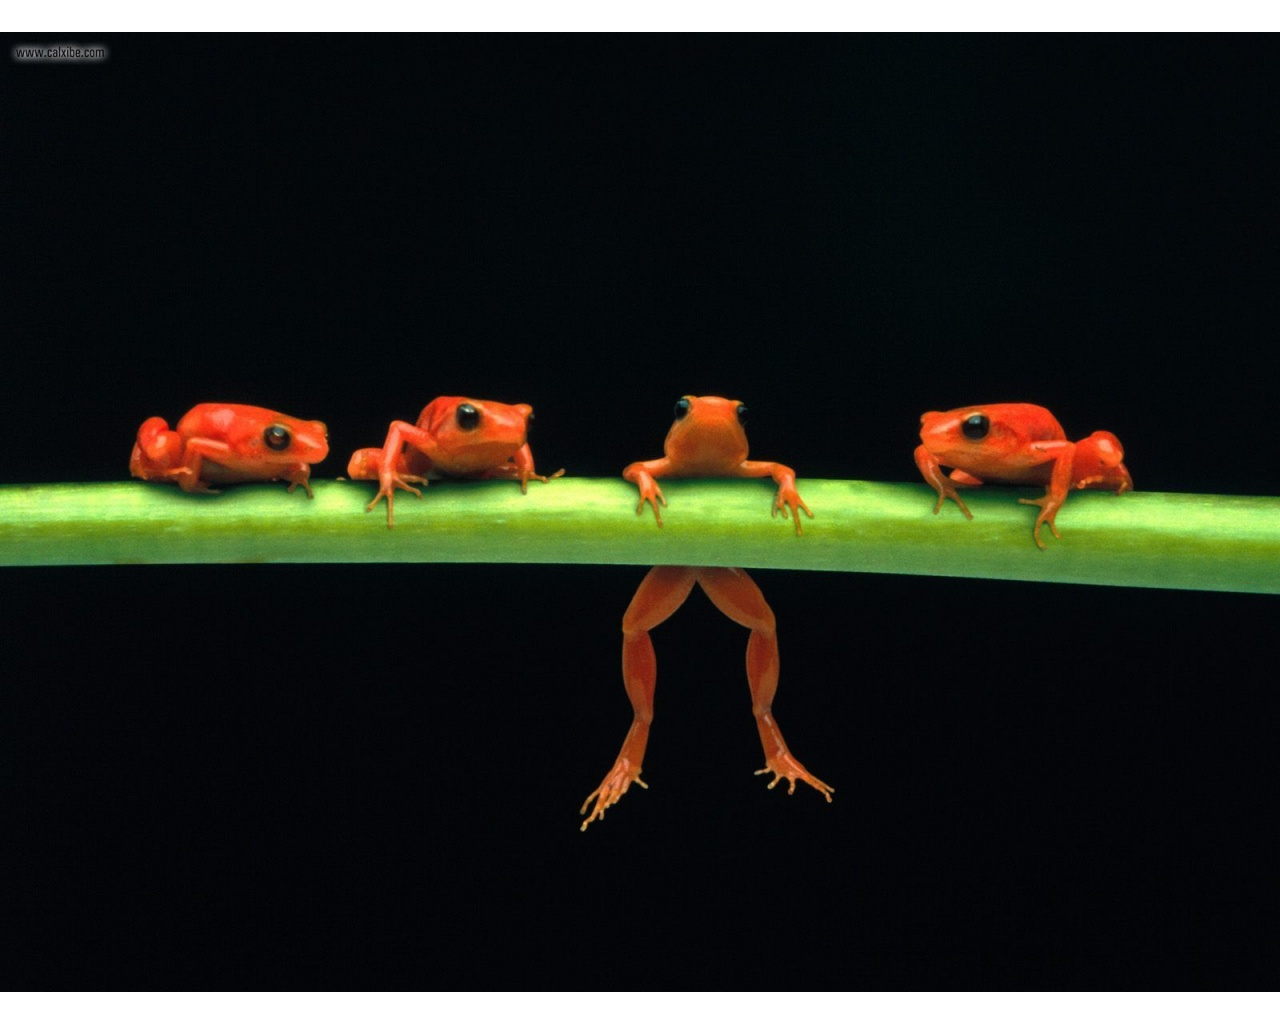 Hang in There Red Tree Frogs wallpaper